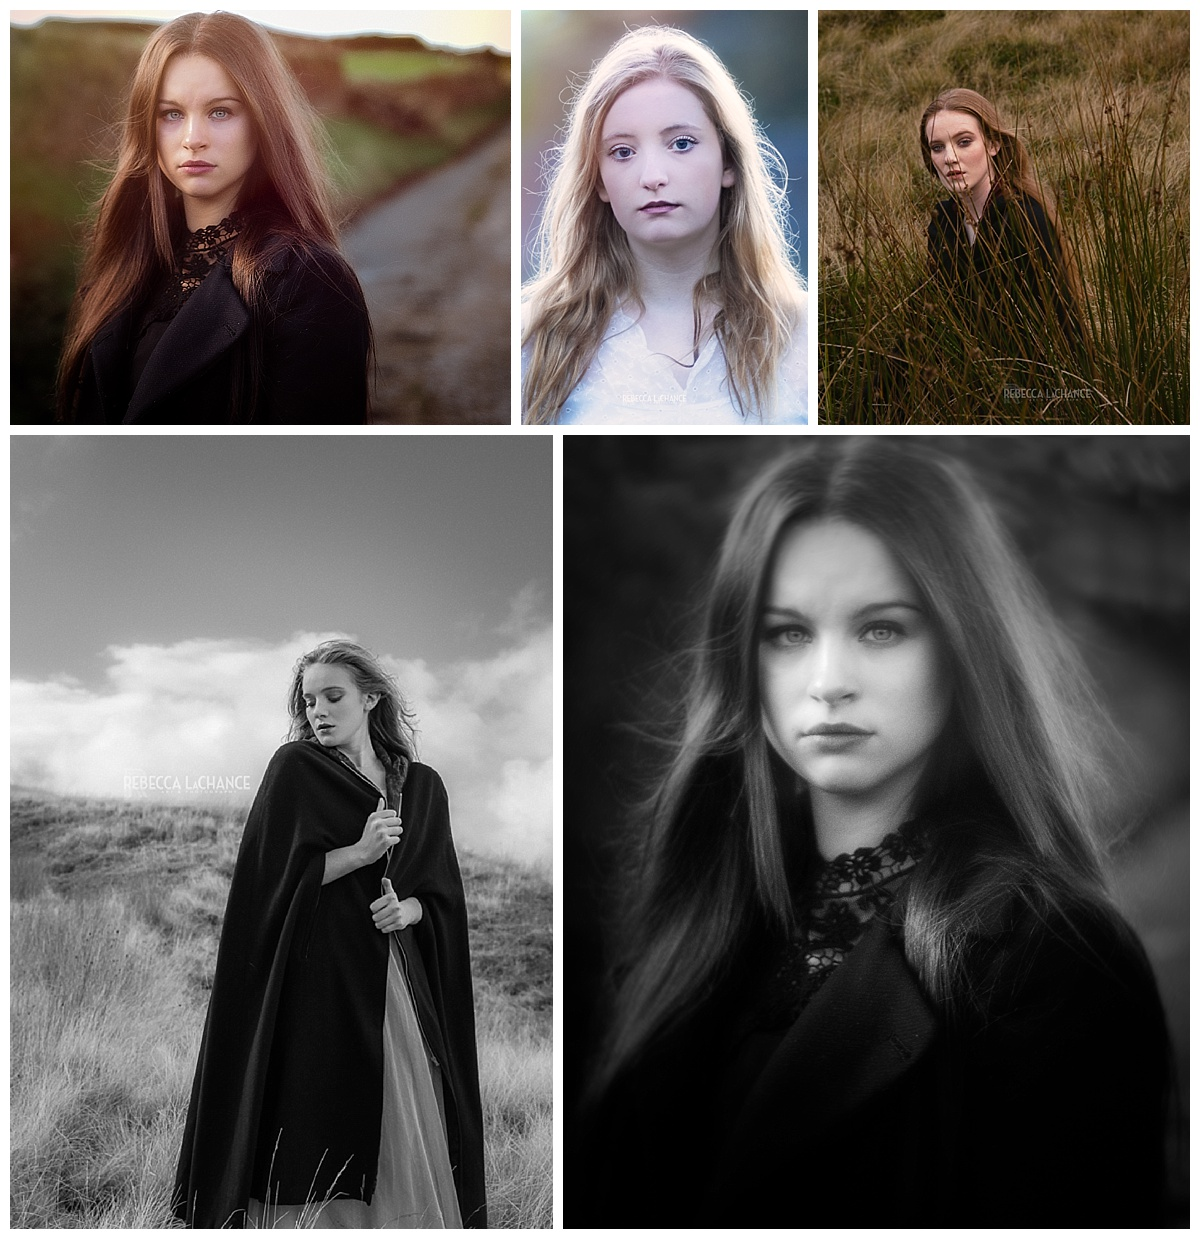 Portraits of teen girls (c) Rebecca LaChance, 2016. Haworth, England. Examples of teen portraits that can be seen on this website, on Facebook.com/RebeccaLaChanceArt,   on Instagram @rebeccalachancephotography. I don't offer Senior photos but I do portraits of teens